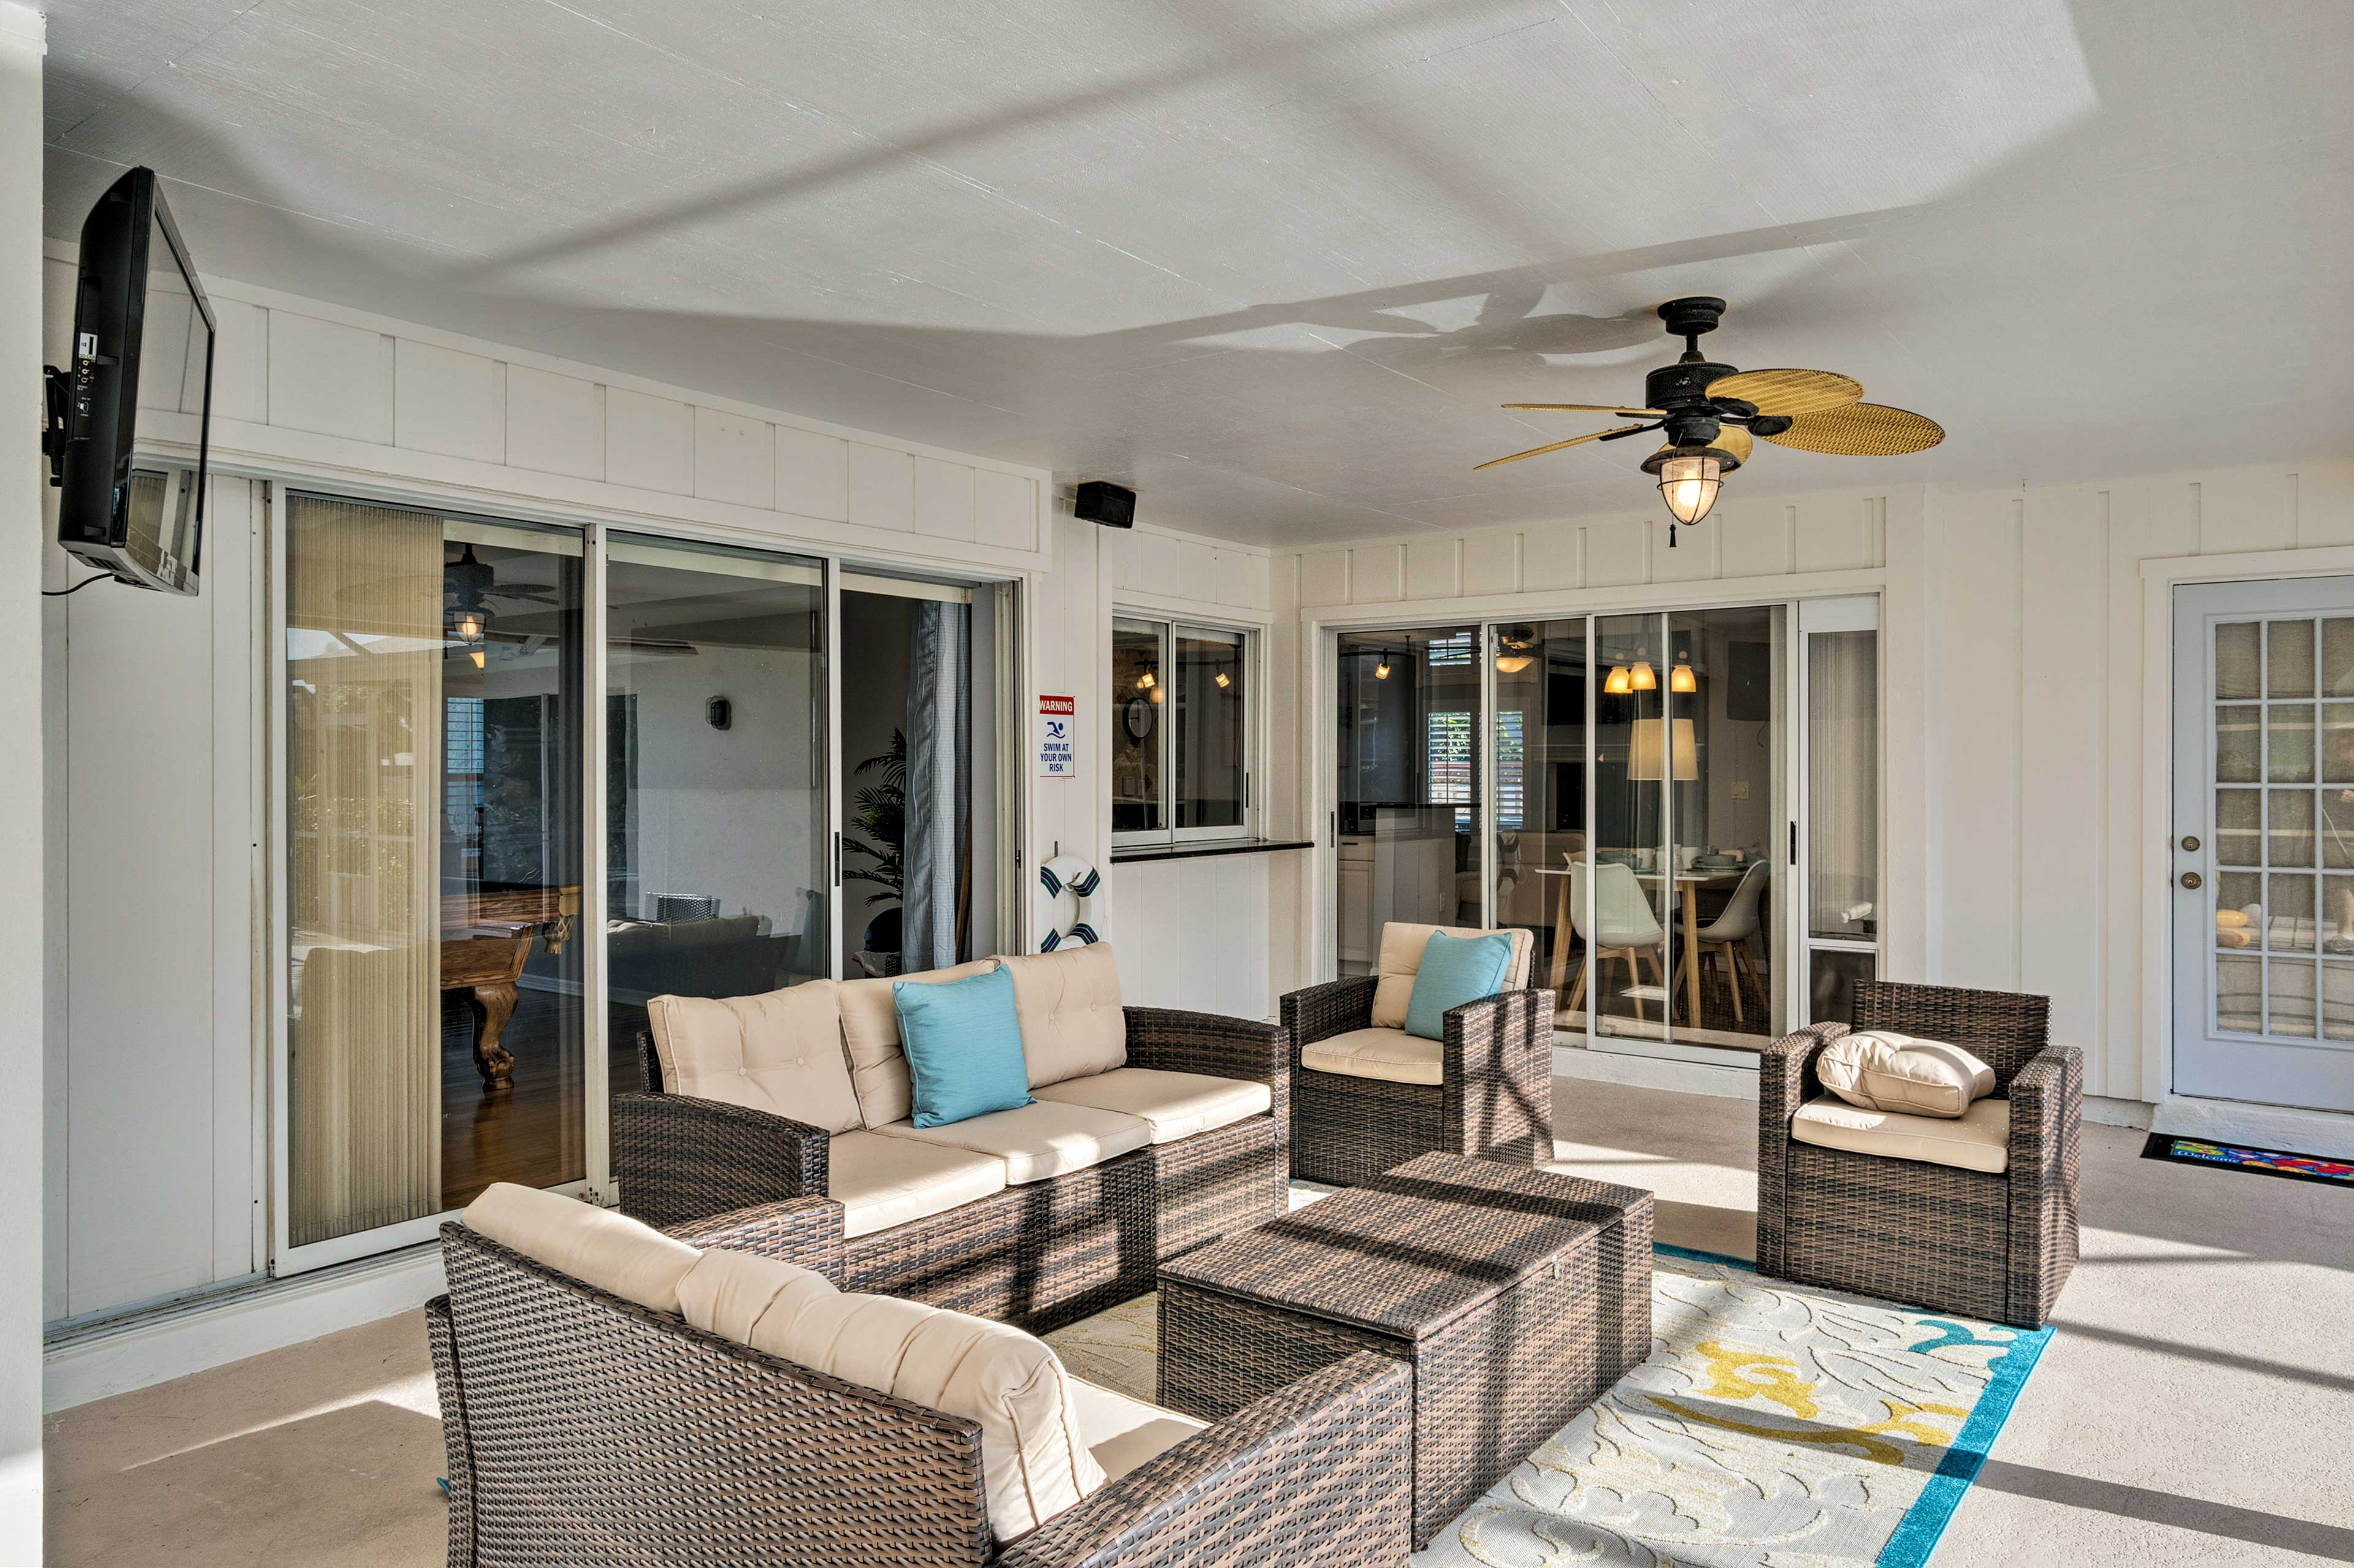 Enjoy the Florida weather in your outdoor living room.